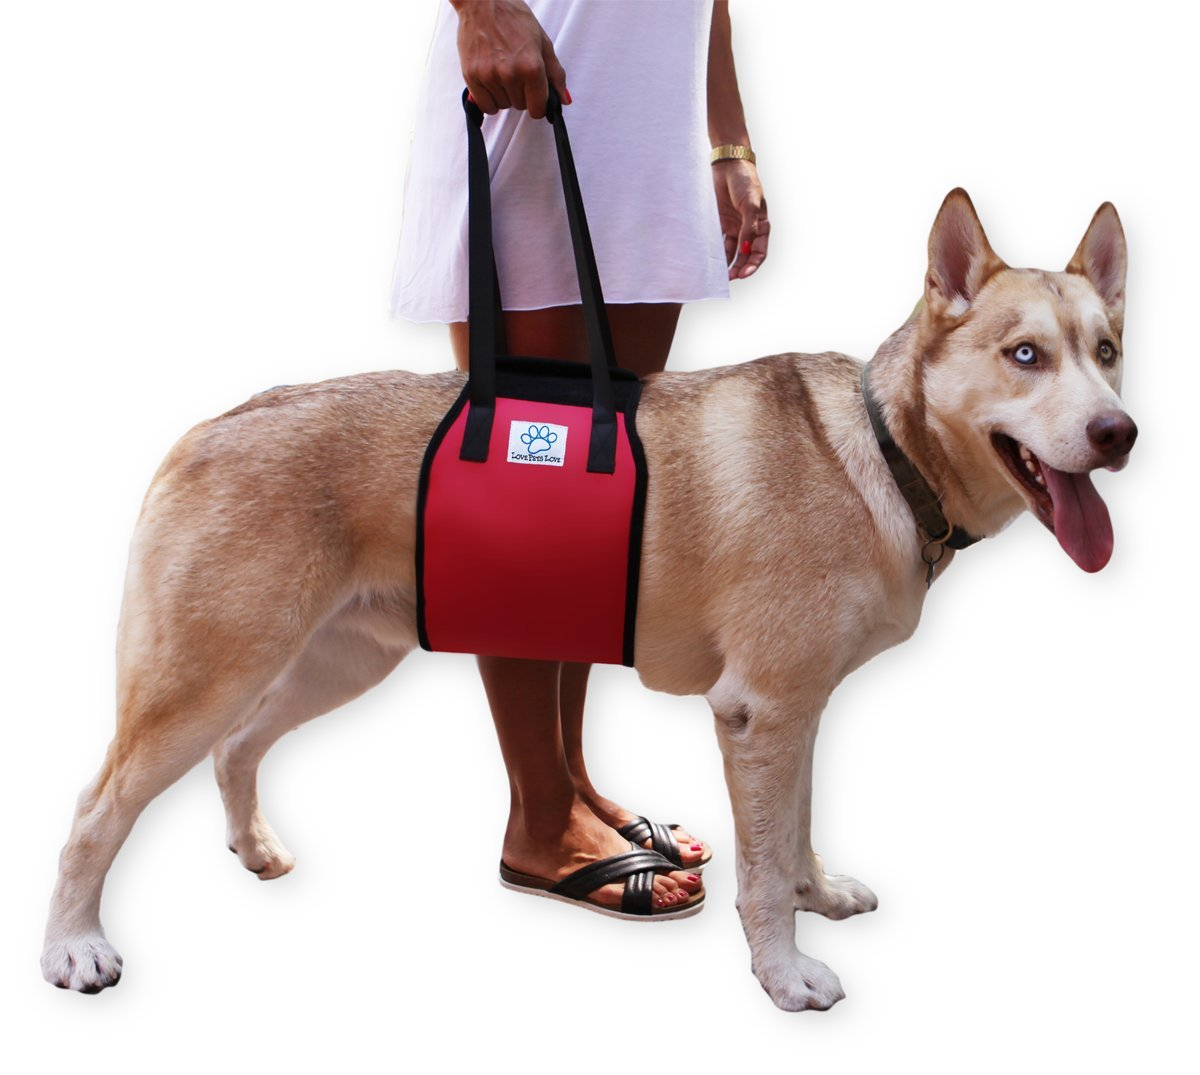 LovePets Harness Lift Harness for Canine Support Aid, XL Red by Love Pets Love